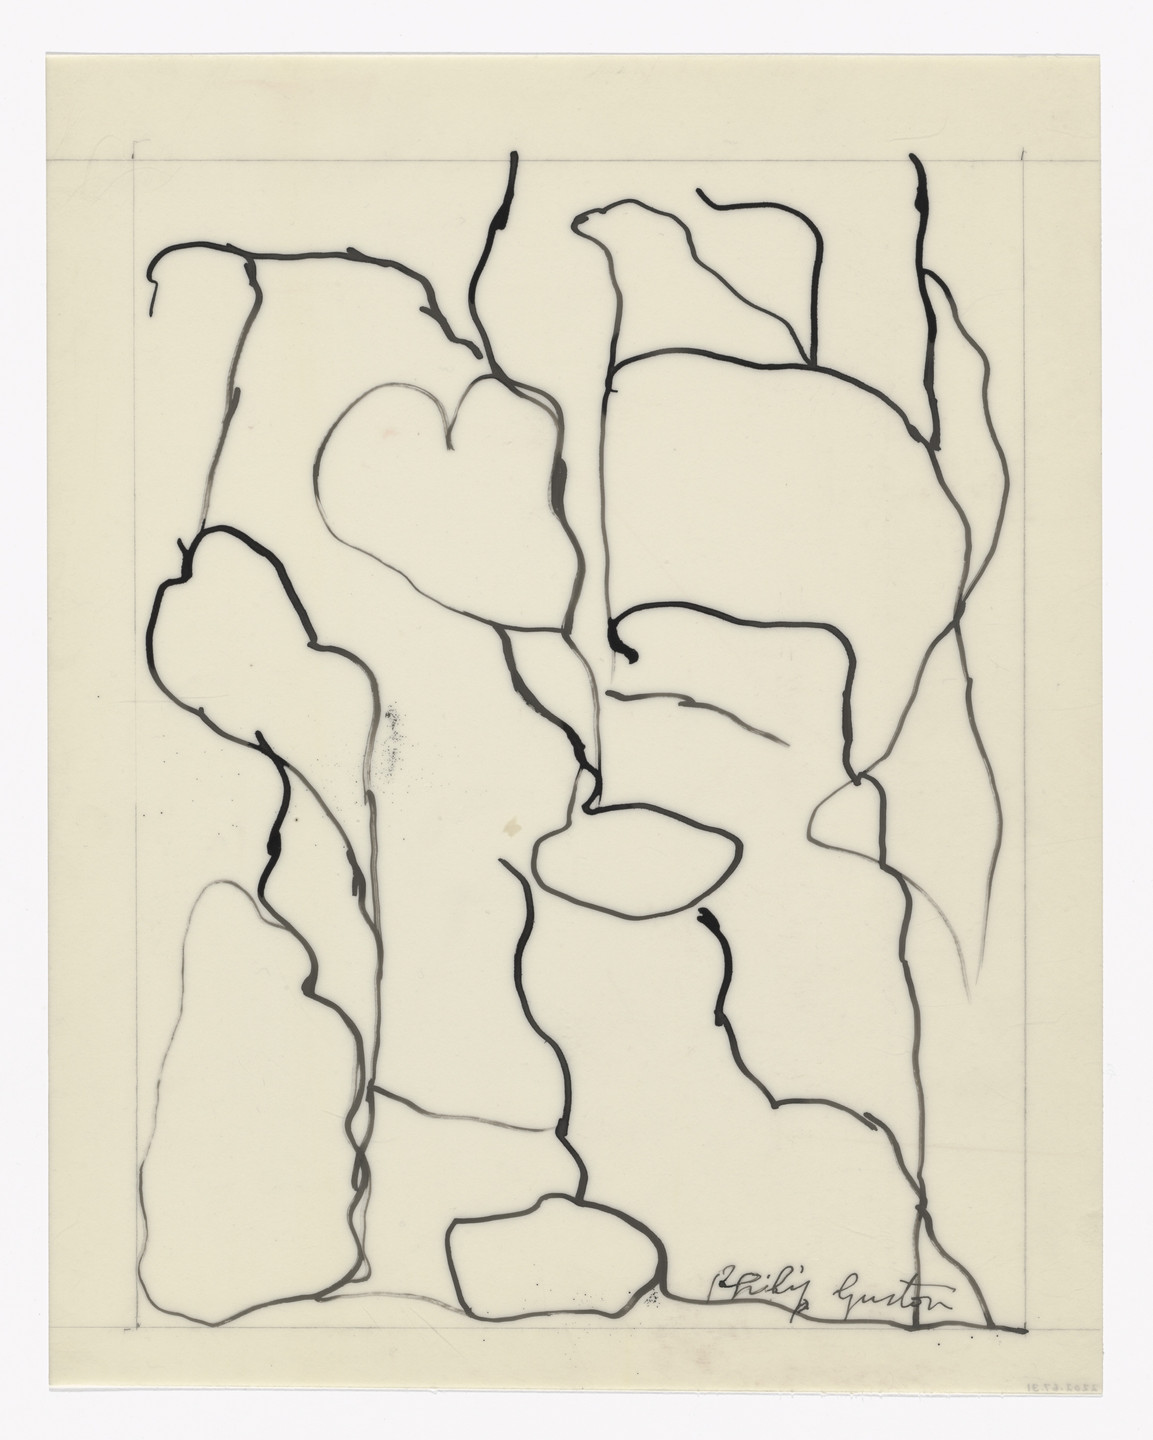 Philip Guston. Unused preparatory drawing for In Memory of My Feelings. 1967